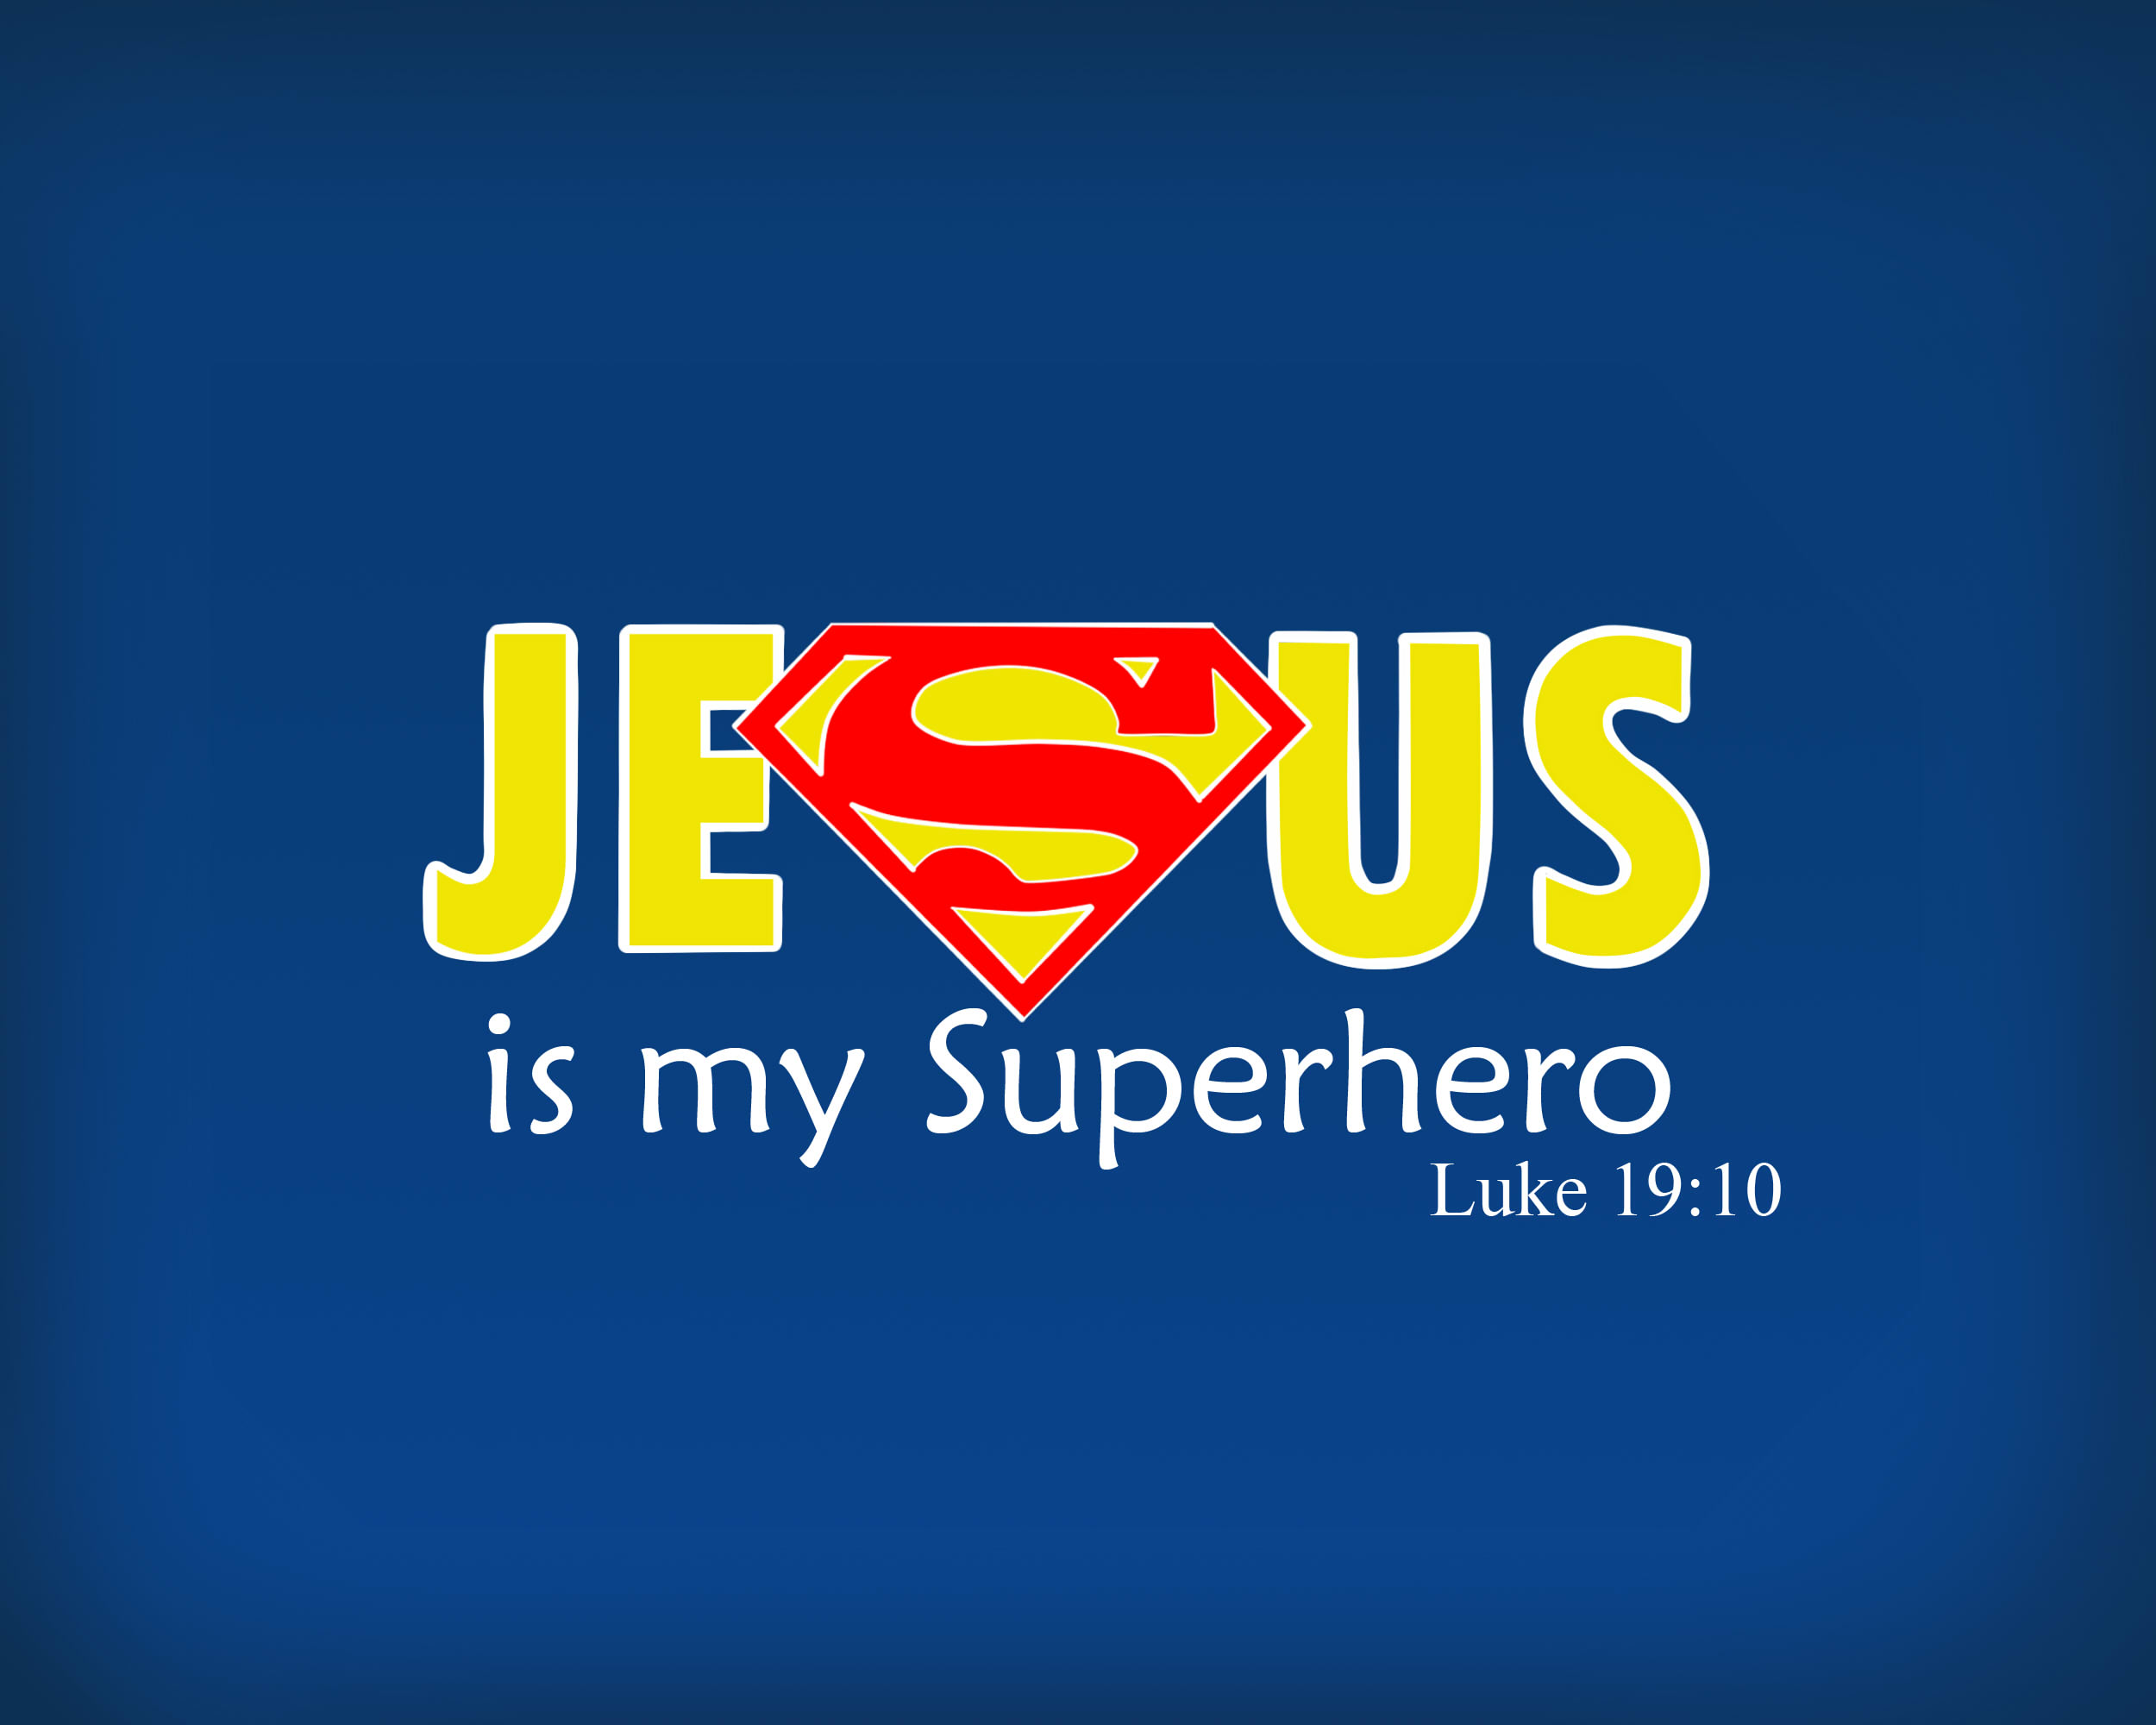 jesus christ superman wallpaper picture Download.